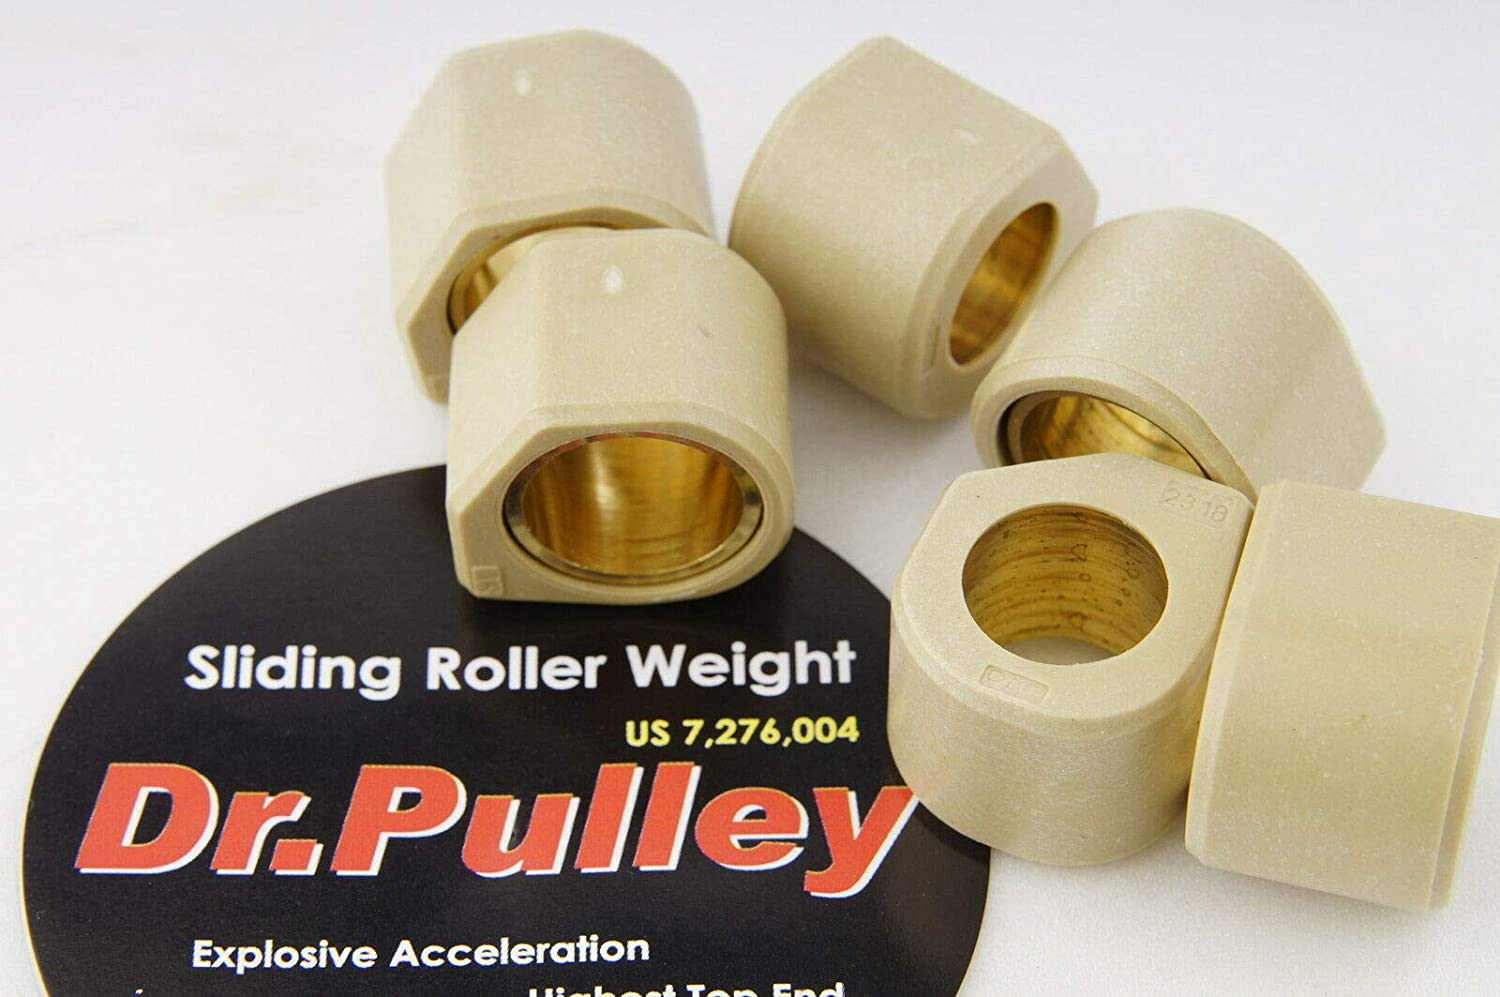 ALL KYMCO XCITING 250 DR.PULLEY SR2318 HEXAGONAL SLIDING ROLLER WEIGHTS